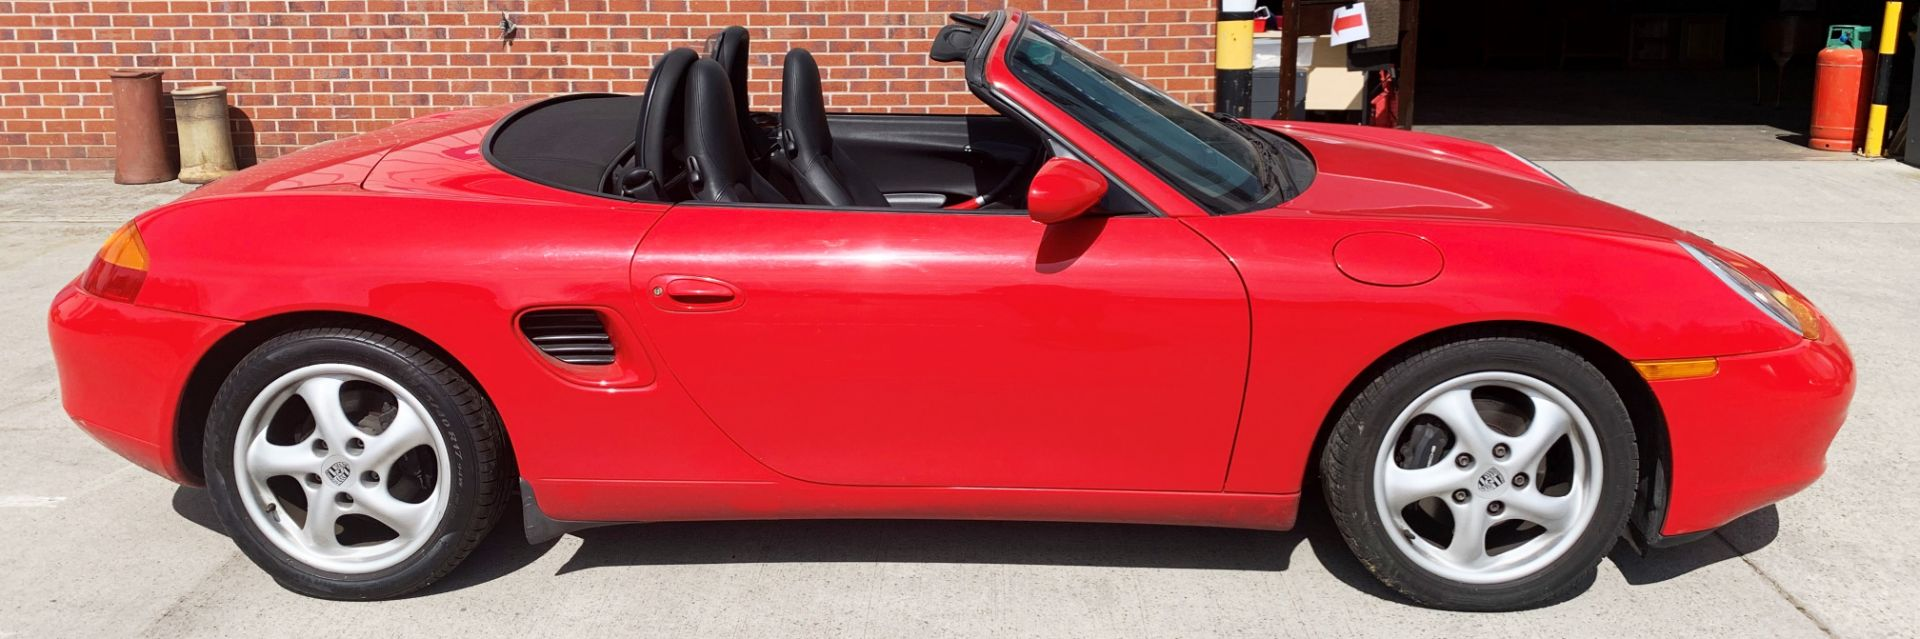 From a deceased estate: PORSCHE BOXSTER 2.5 CONVERTIBLE - Image 2 of 25